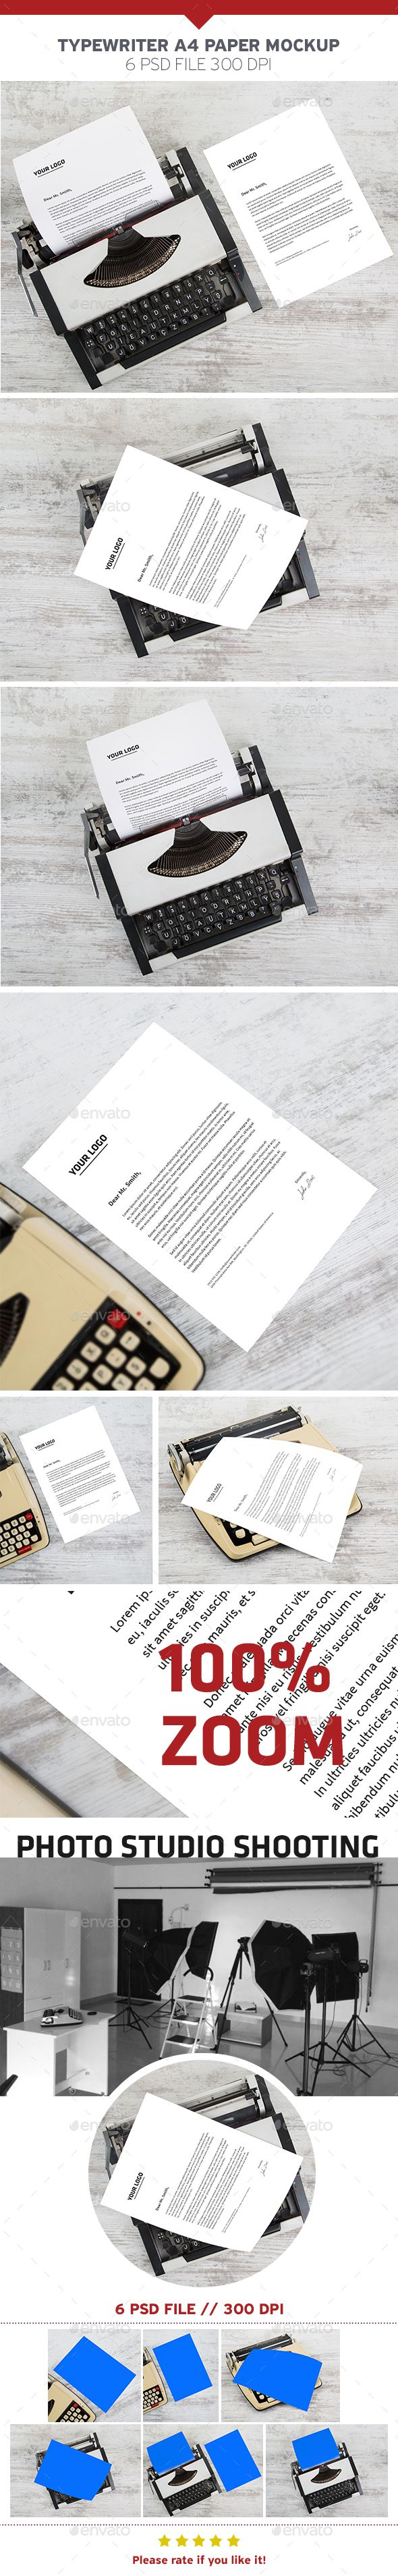 Typewriter A4 Paper #Mockup - #Product Mock-Ups #Graphics Download here: https://graphicriver.net/item/typewriter-a4-paper-mockup/19507895?ref=alena994